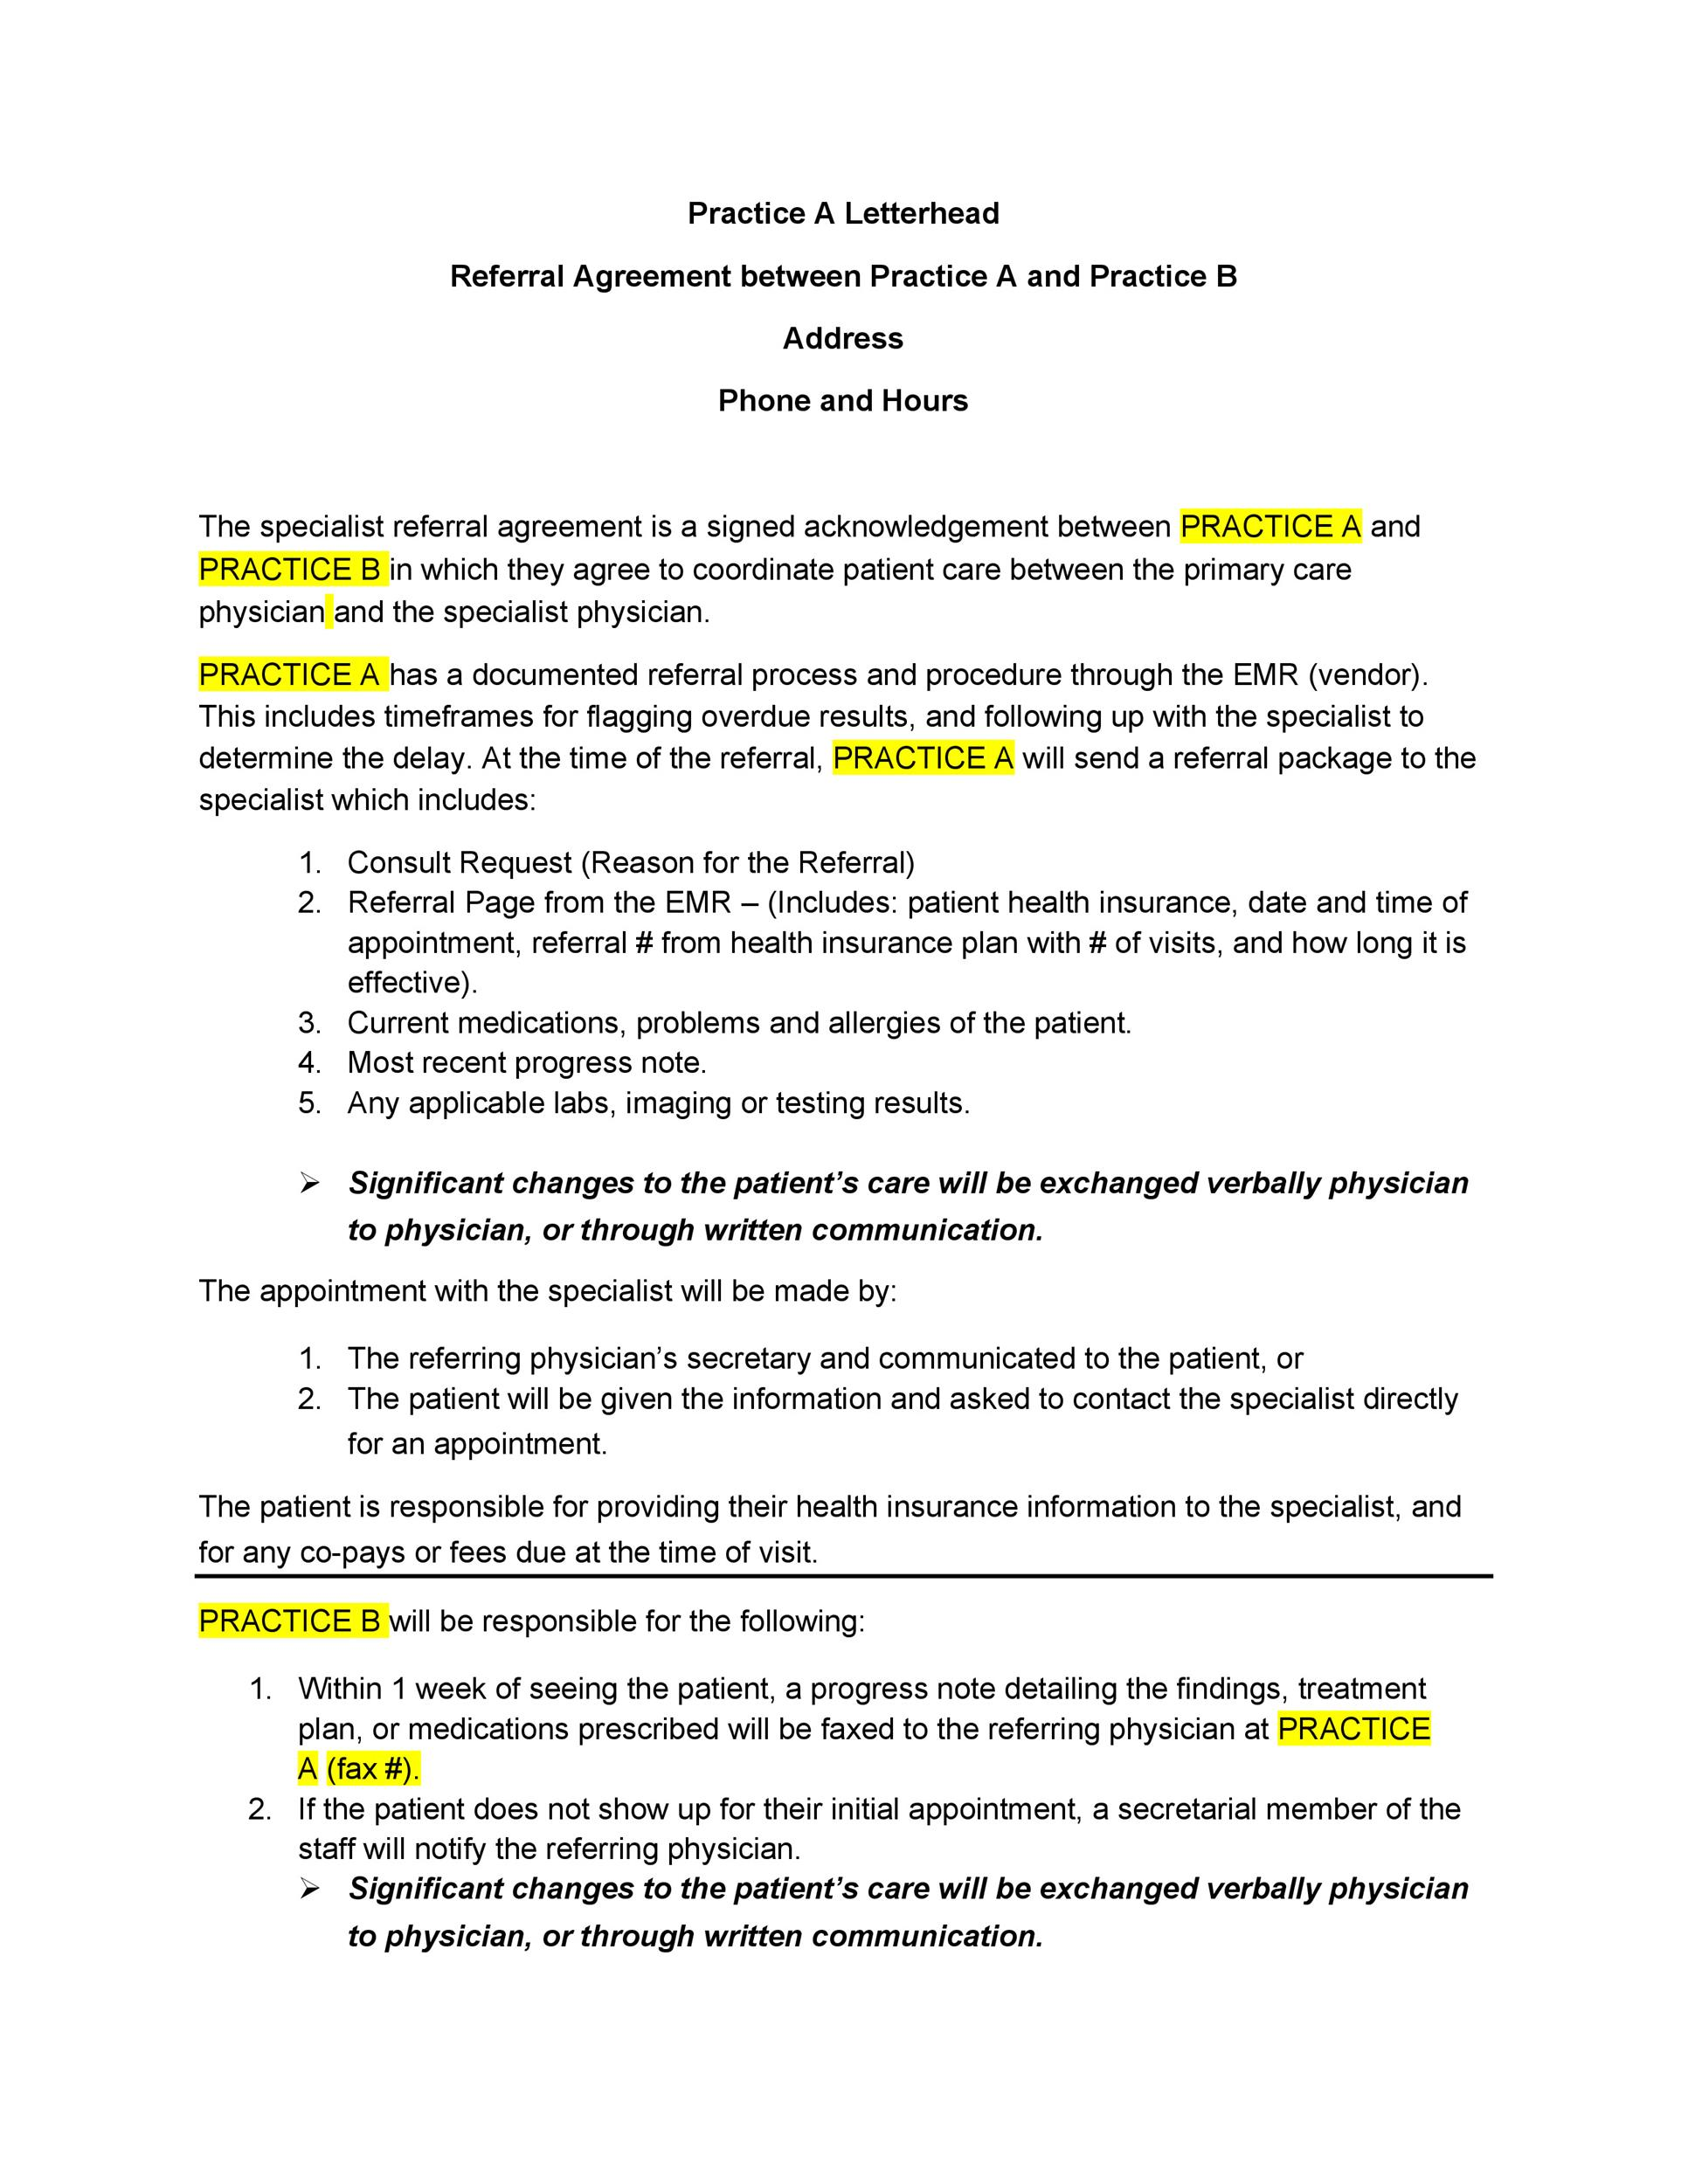 Free referral agreement template 02